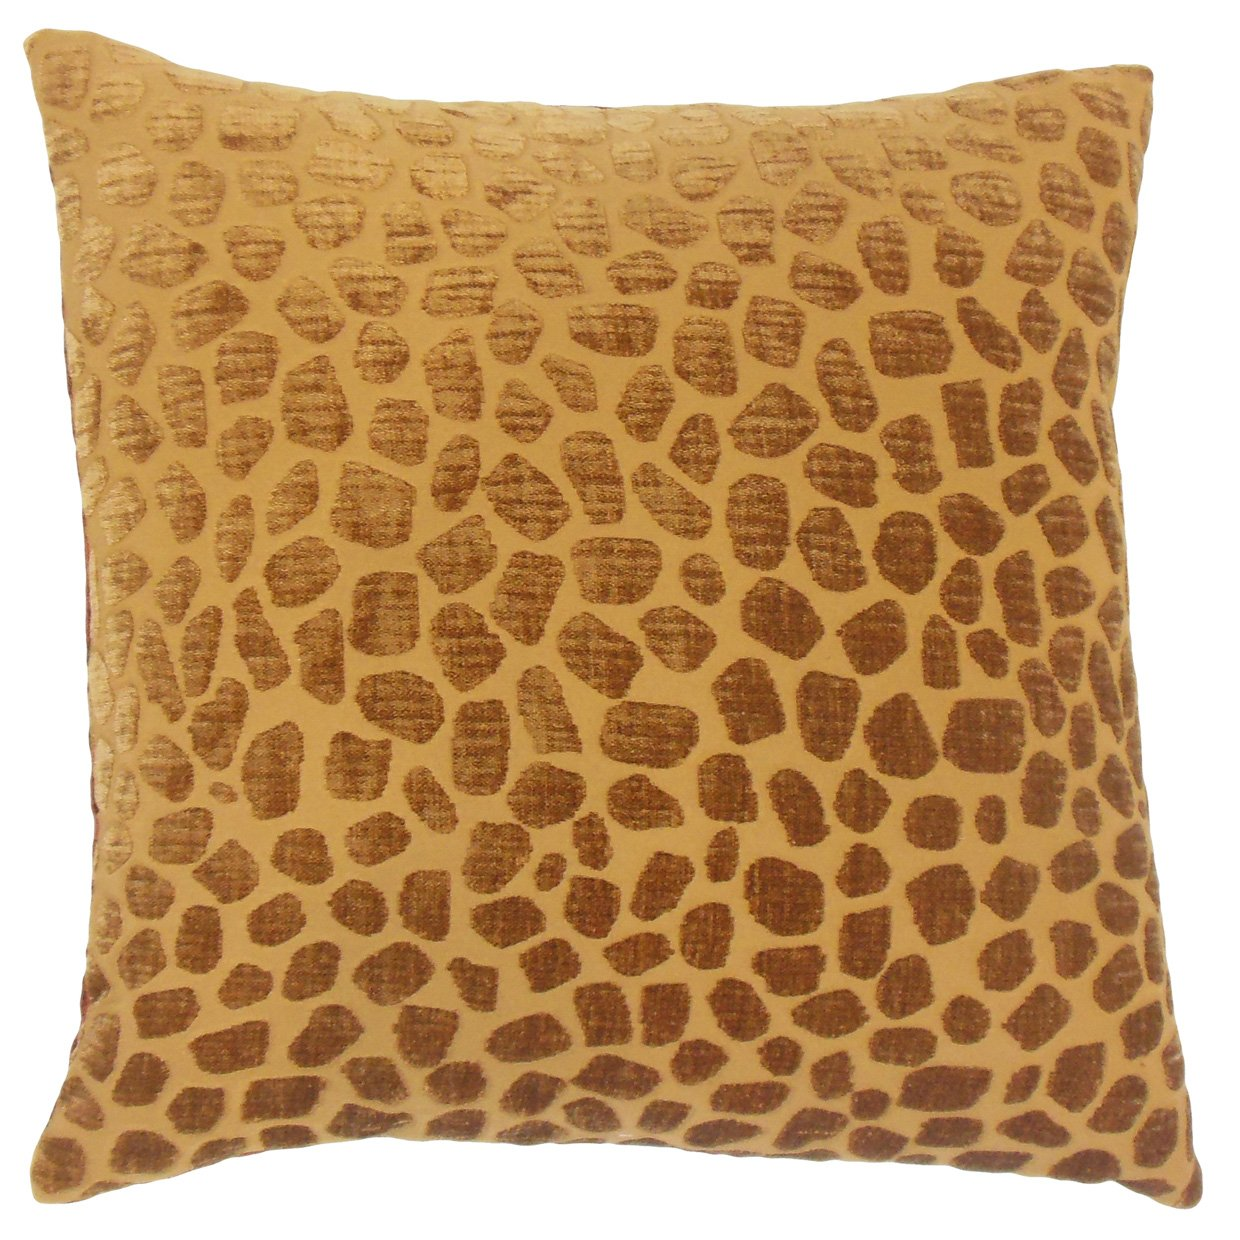 Ginger The Pillow Collection P18-MER-M9252-GINGER-P100 Lameez Geometric Pillow